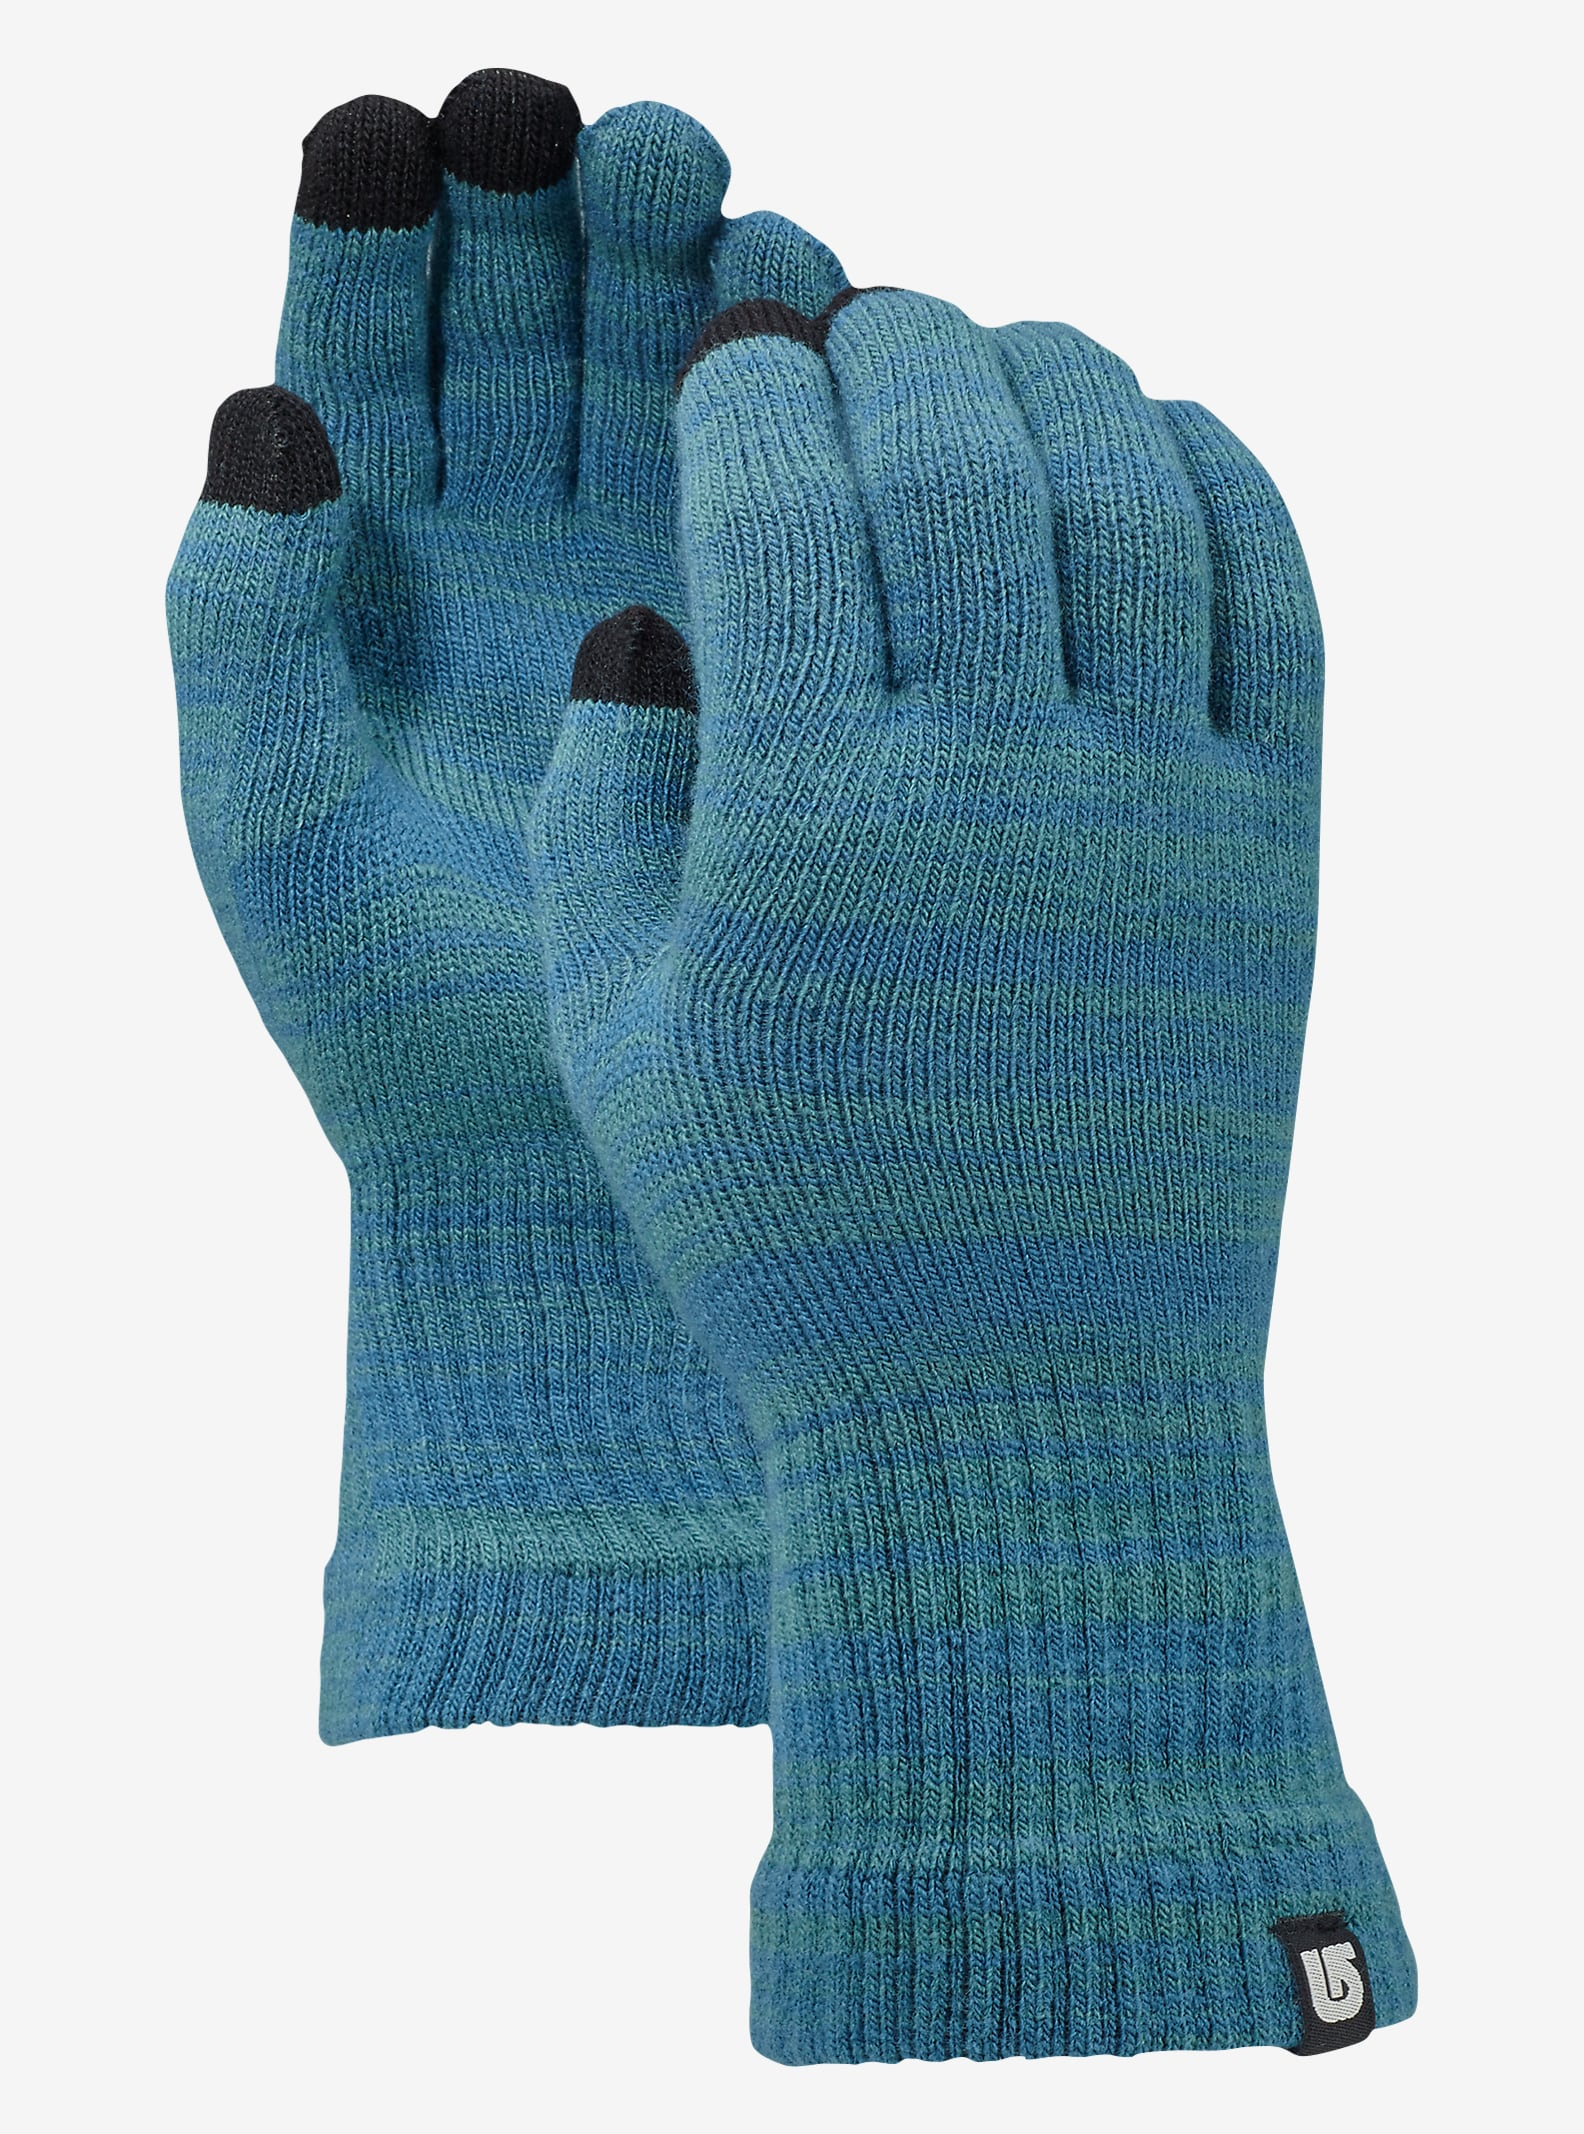 Burton Touch N Go Knit Glove shown in Tundra / Jaded Marl